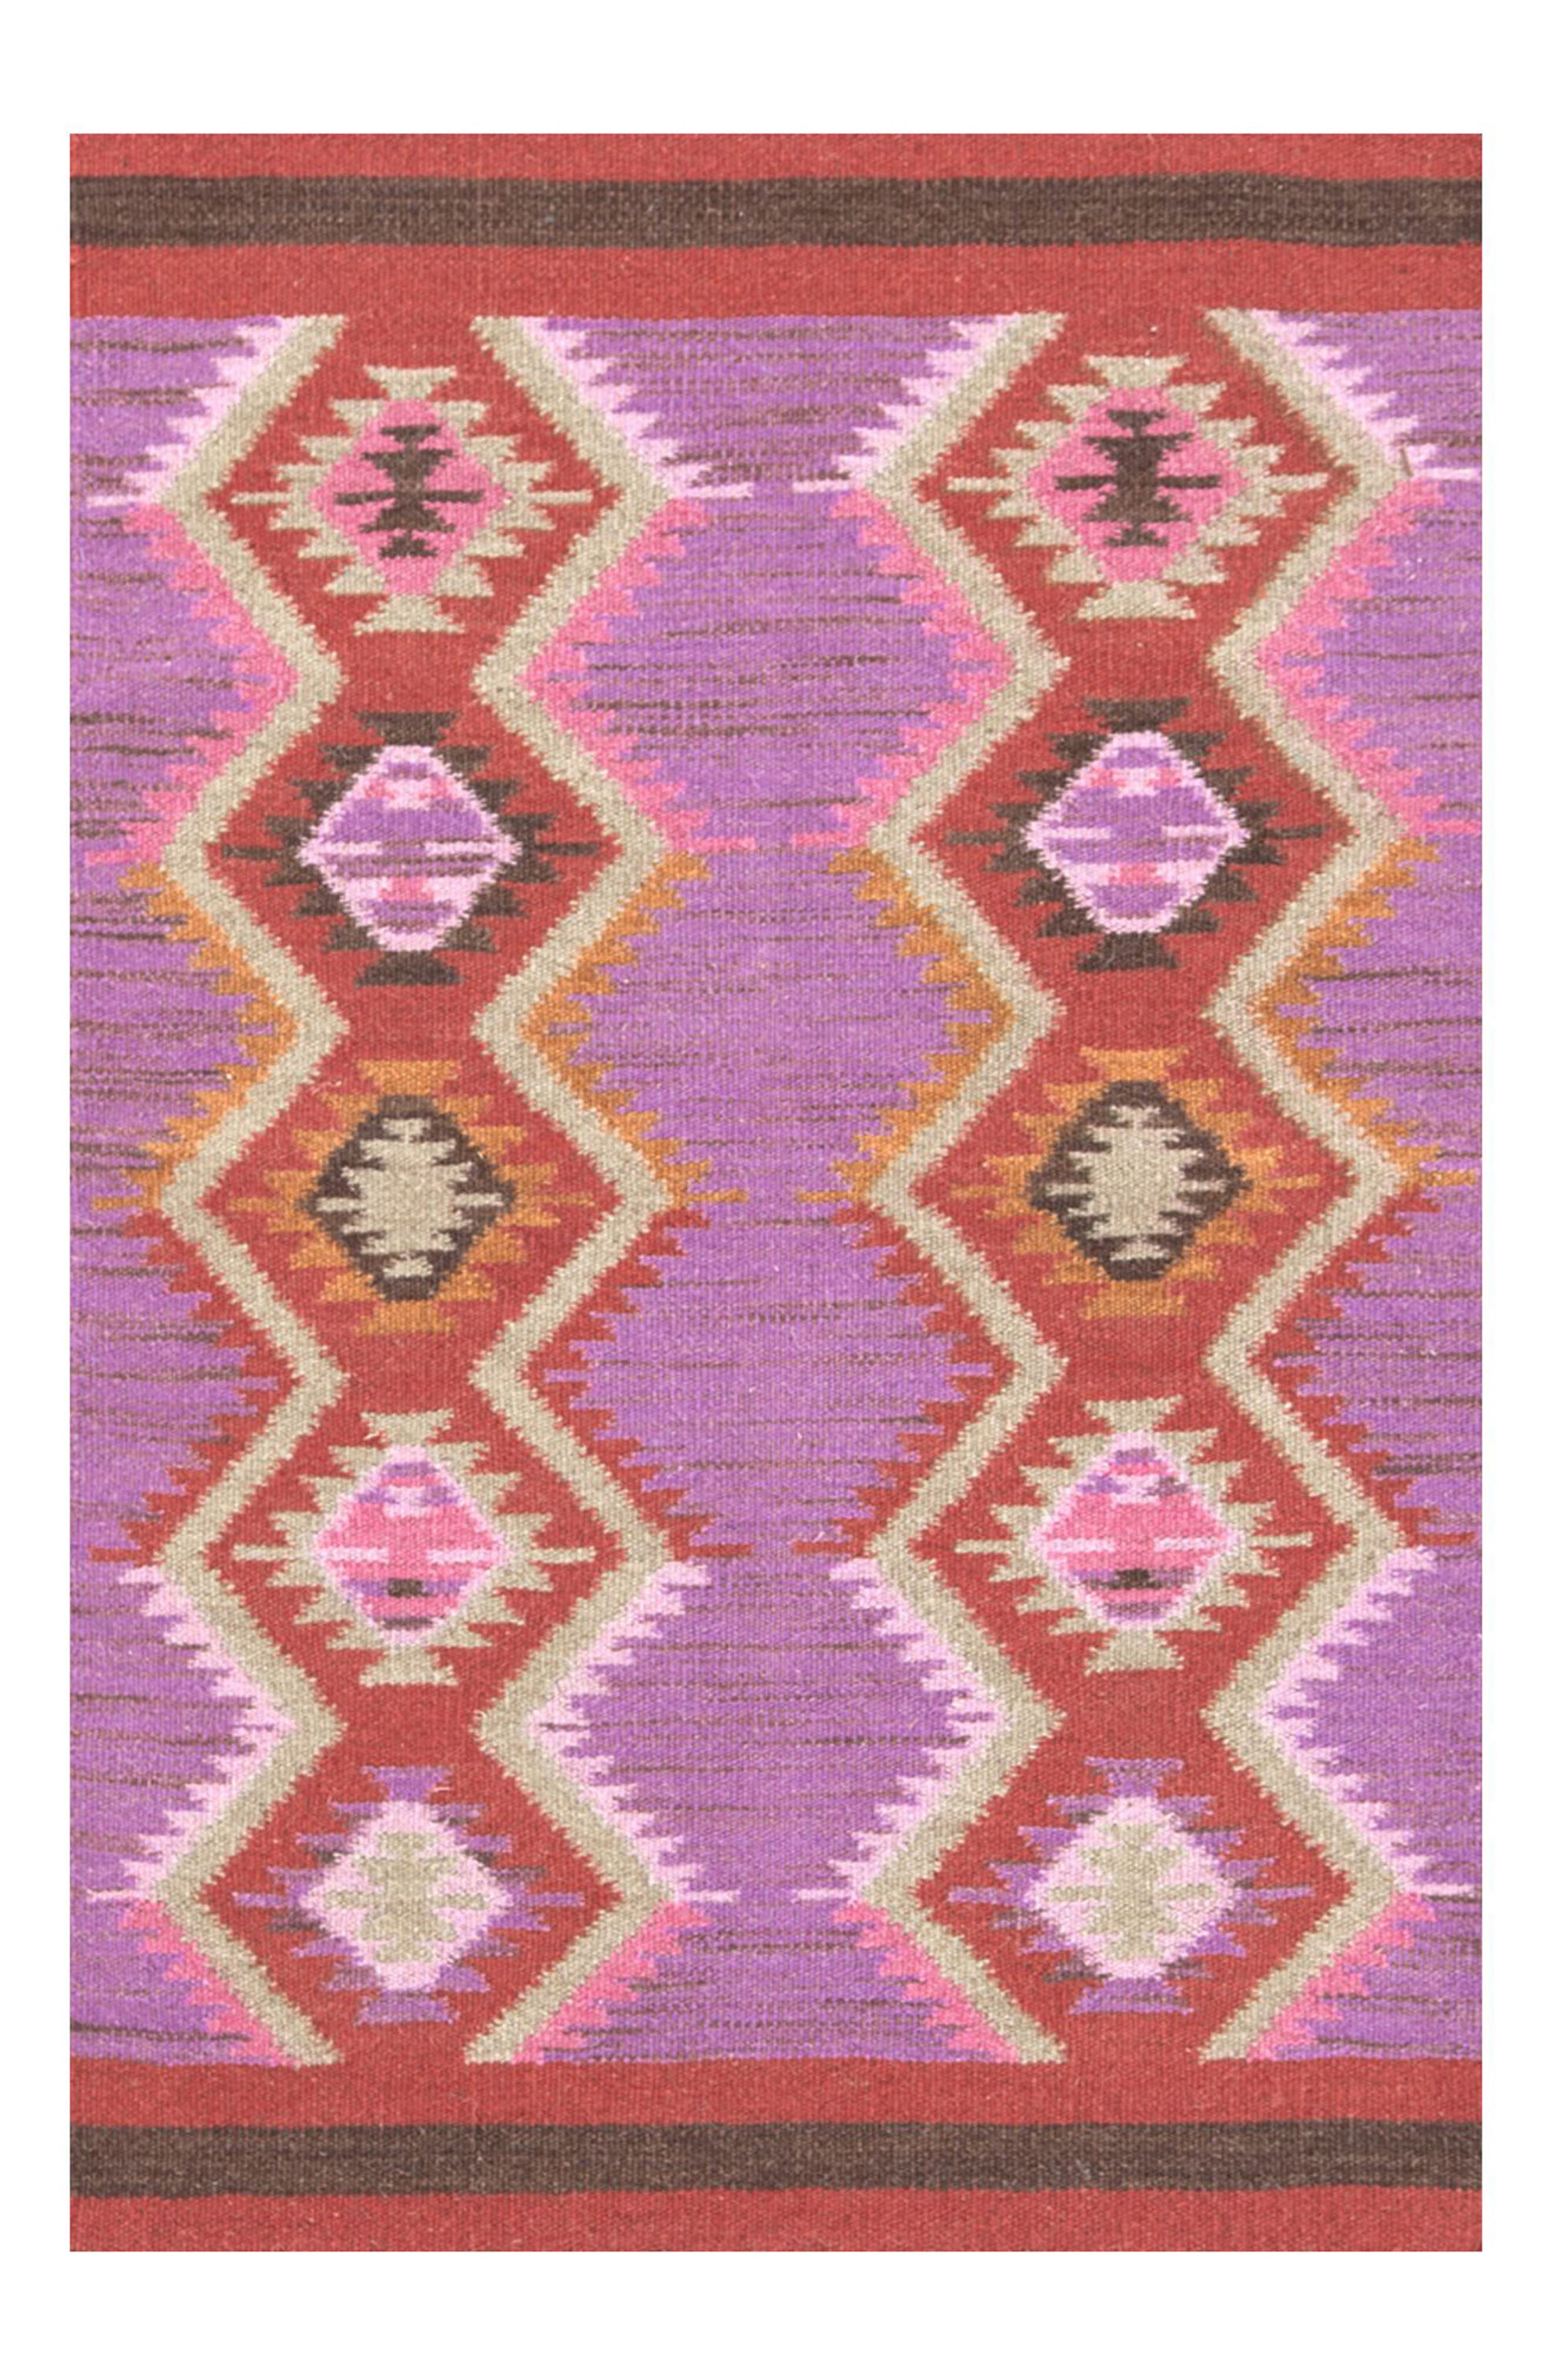 Rhapsody Wool Blend Rug,                             Main thumbnail 1, color,                             PINK